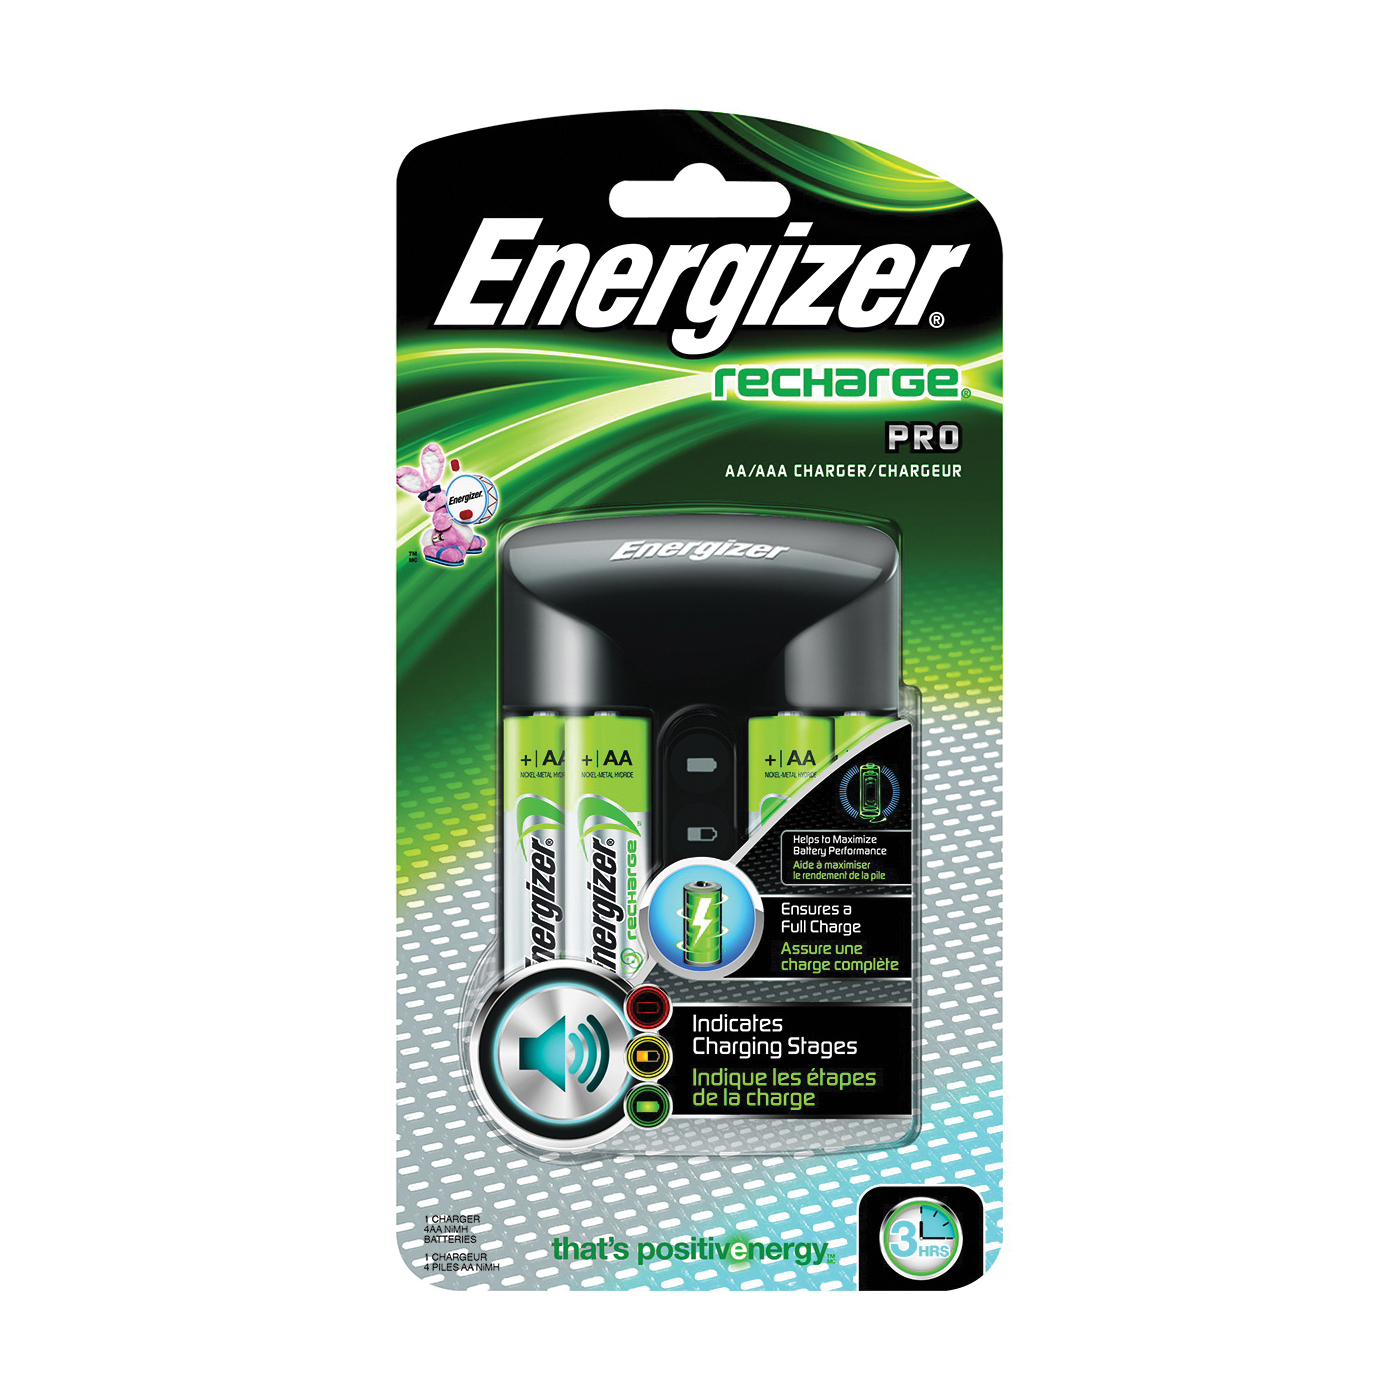 Picture of Energizer CHPROWB4 Battery Charger, AA, AAA Battery, Nickel-Metal Hydride Battery, 4-Battery, Black